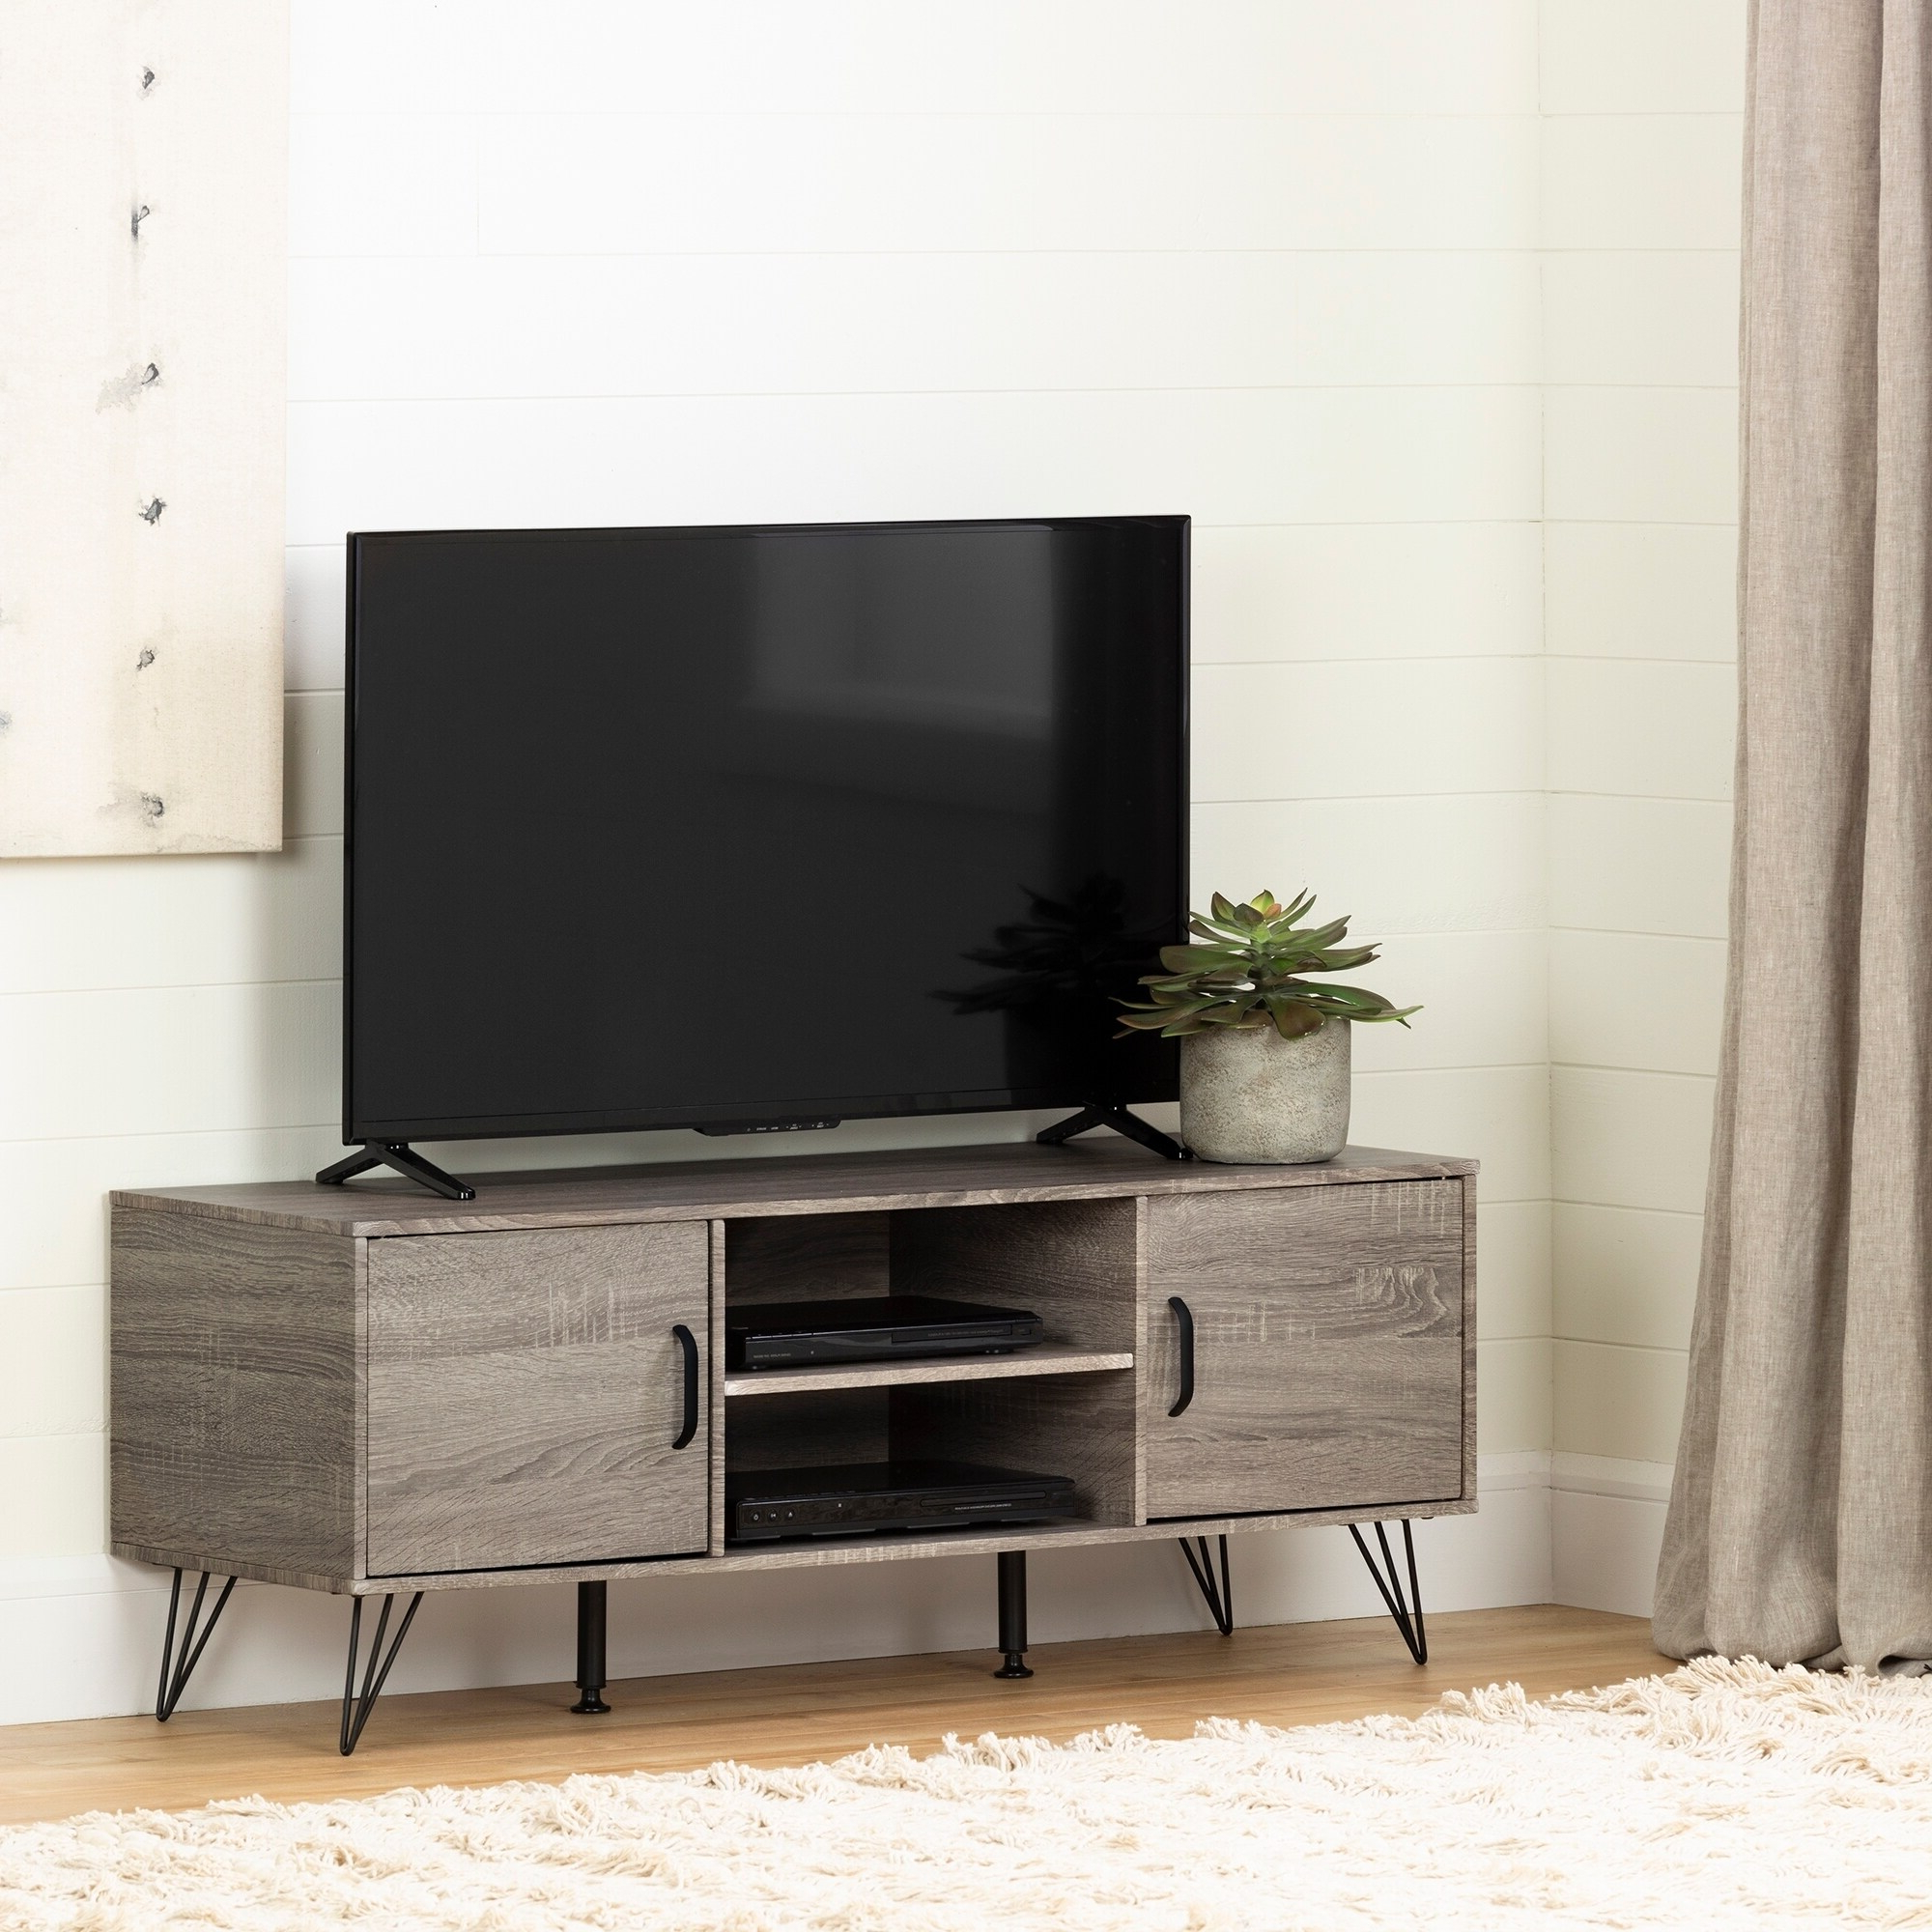 South Shore Evane Tv Stand With Doors For Tvs Up To 55 Pertaining To South Shore Evane Tv Stands With Doors In Oak Camel (View 4 of 20)